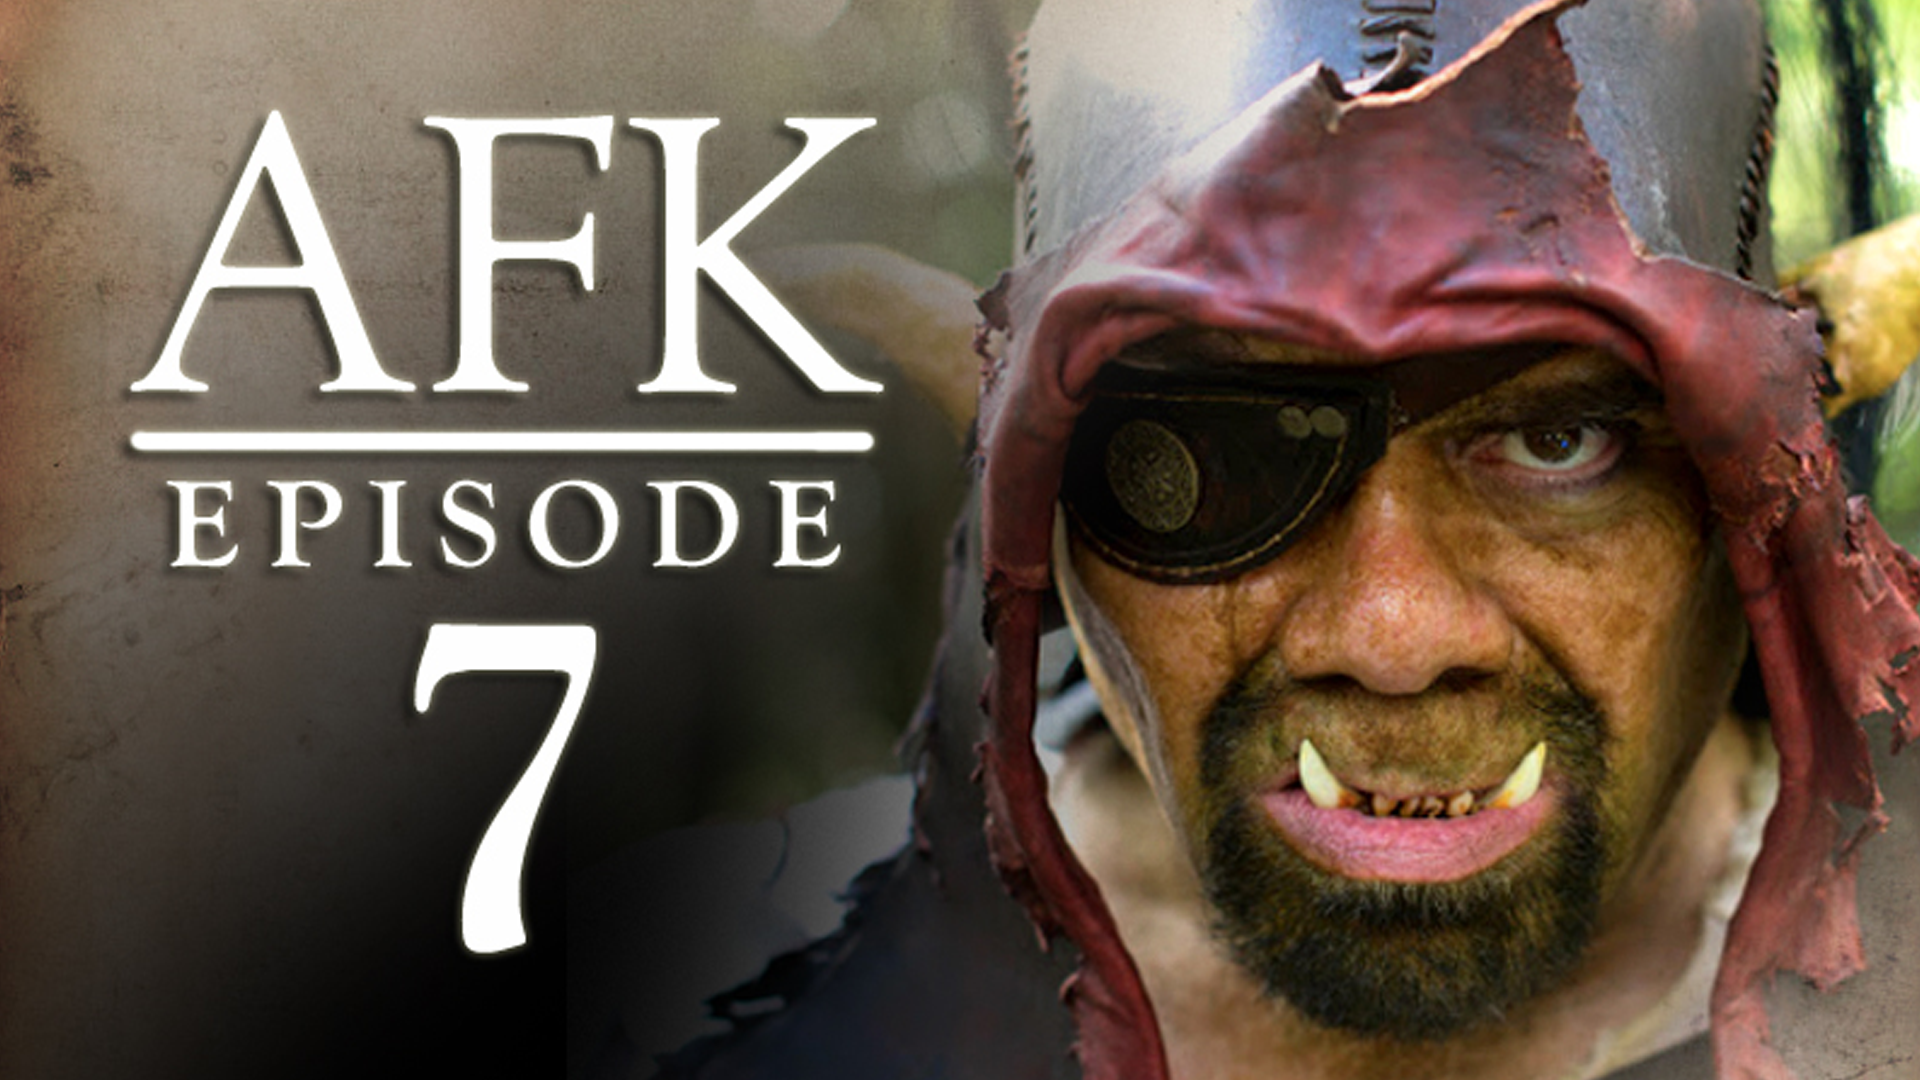 AFK Season 1 Episode 7 OOE